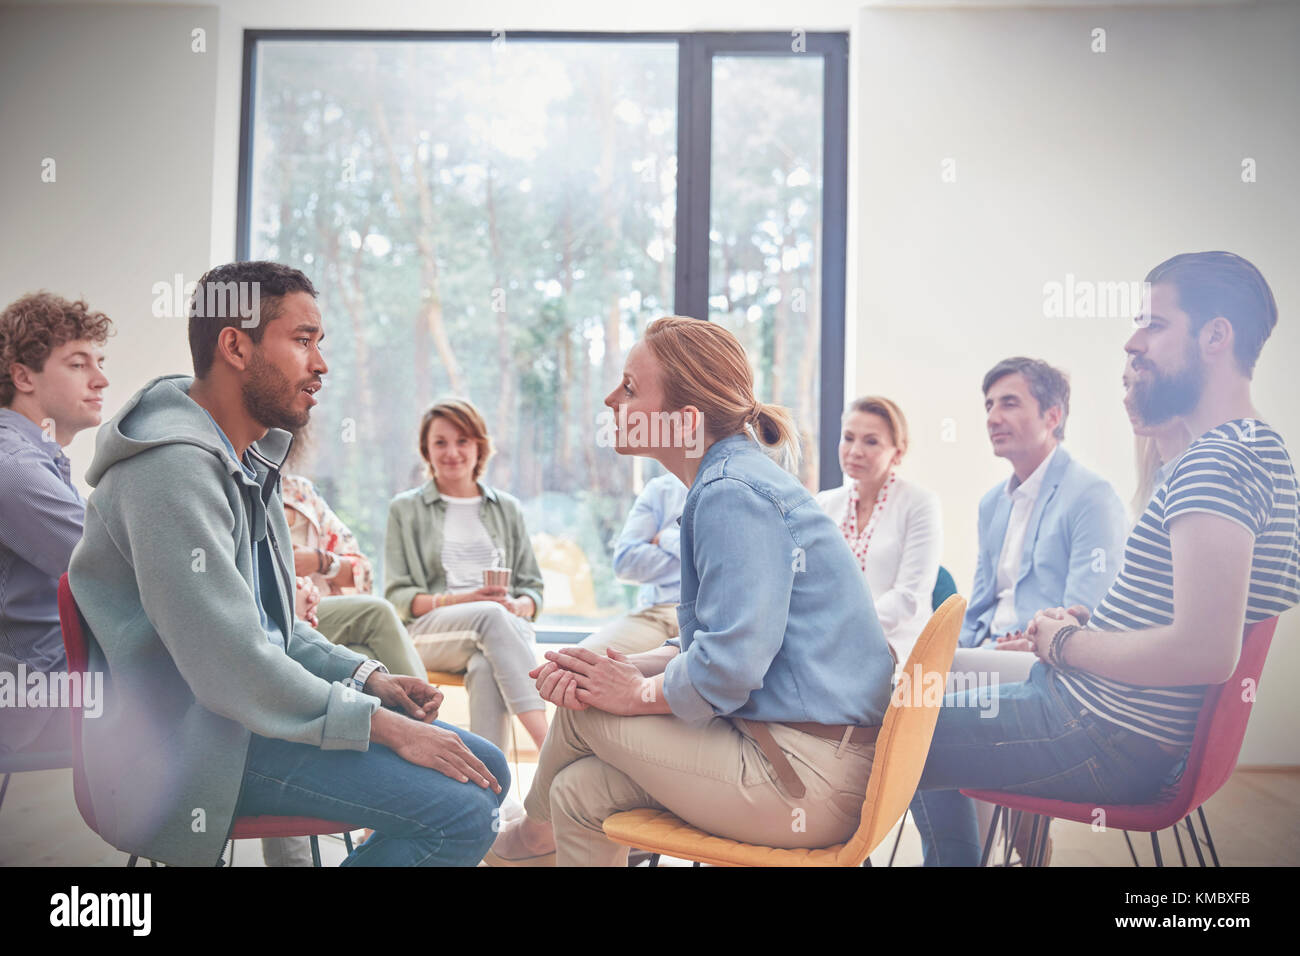 Group watching man and woman talking face to face in group therapy session - Stock Image